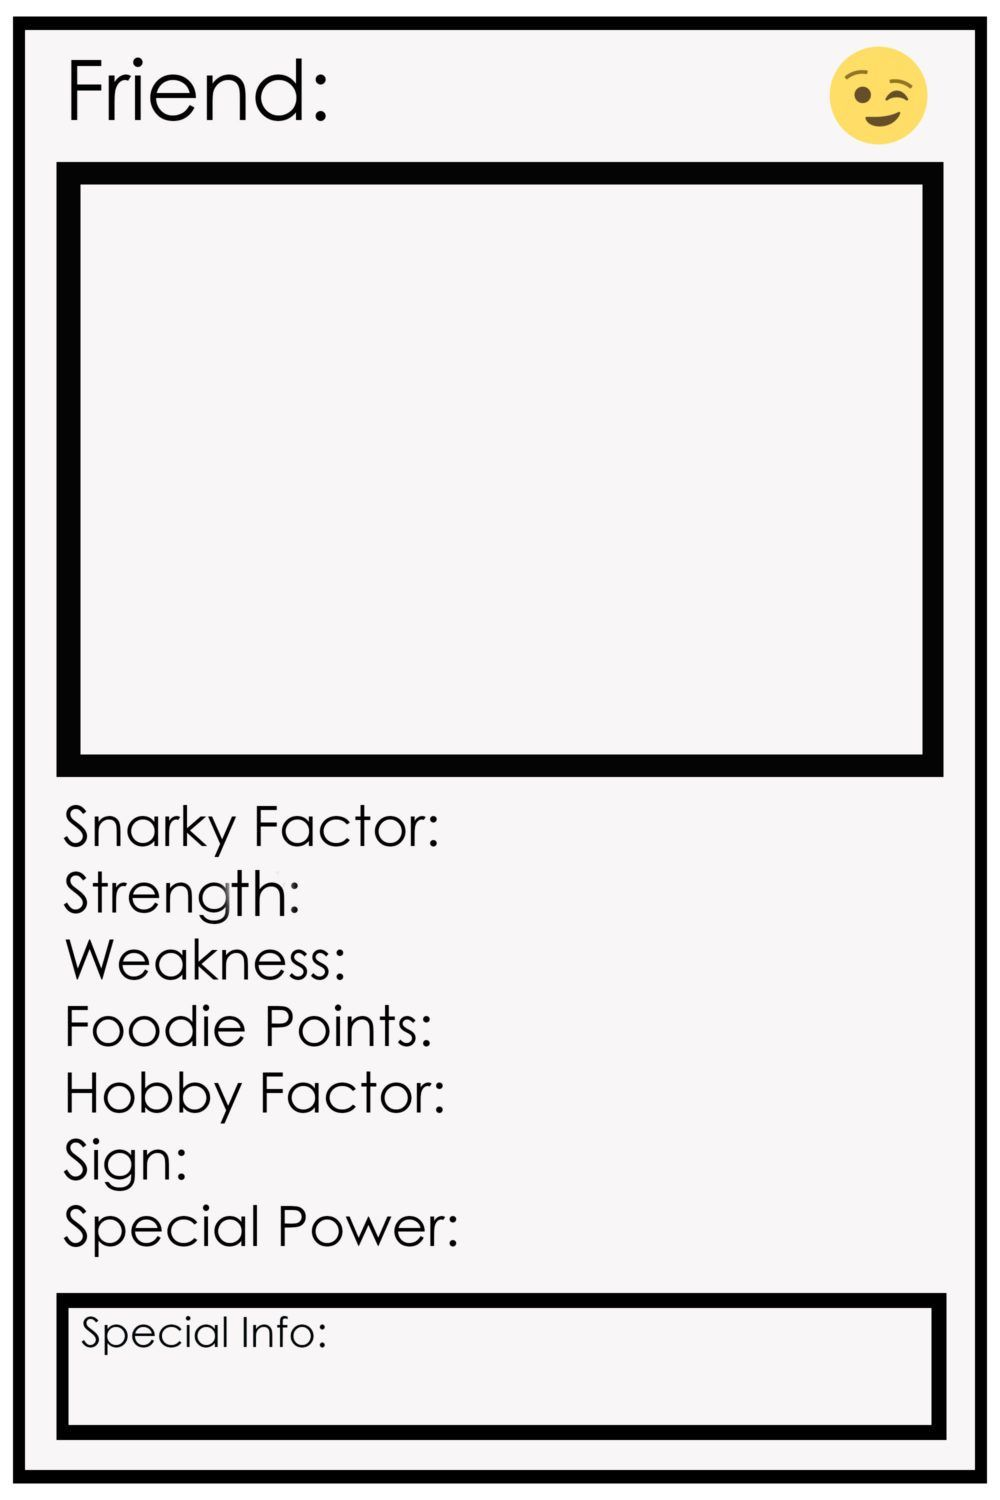 Free Trading Card Template Download Atlantaauctionco In Trading